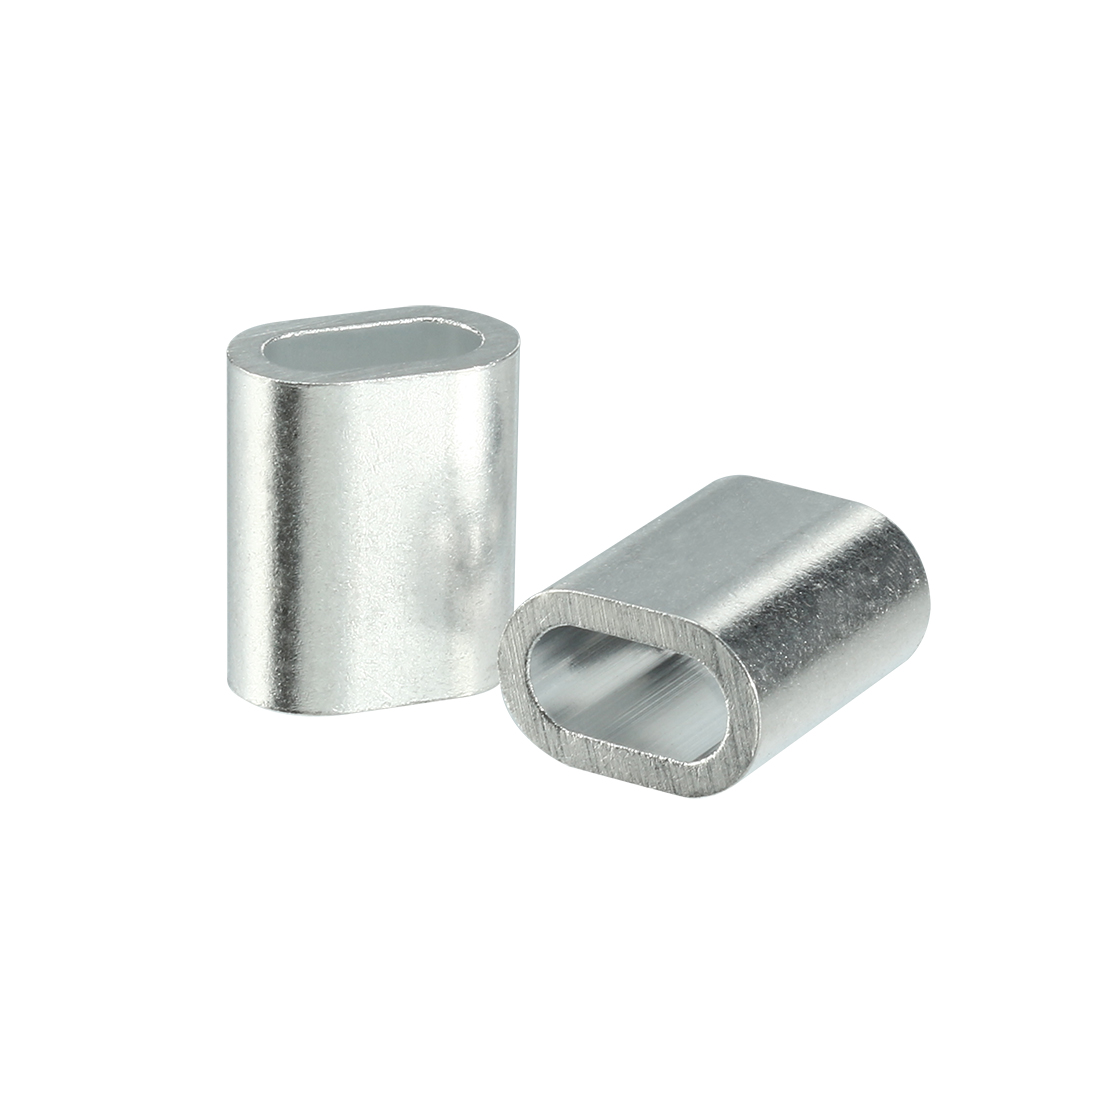 3mm 1/8-inch Cable Wire Rope Aluminum Sleeves Clip Fittings Crimps Loop 100pcs